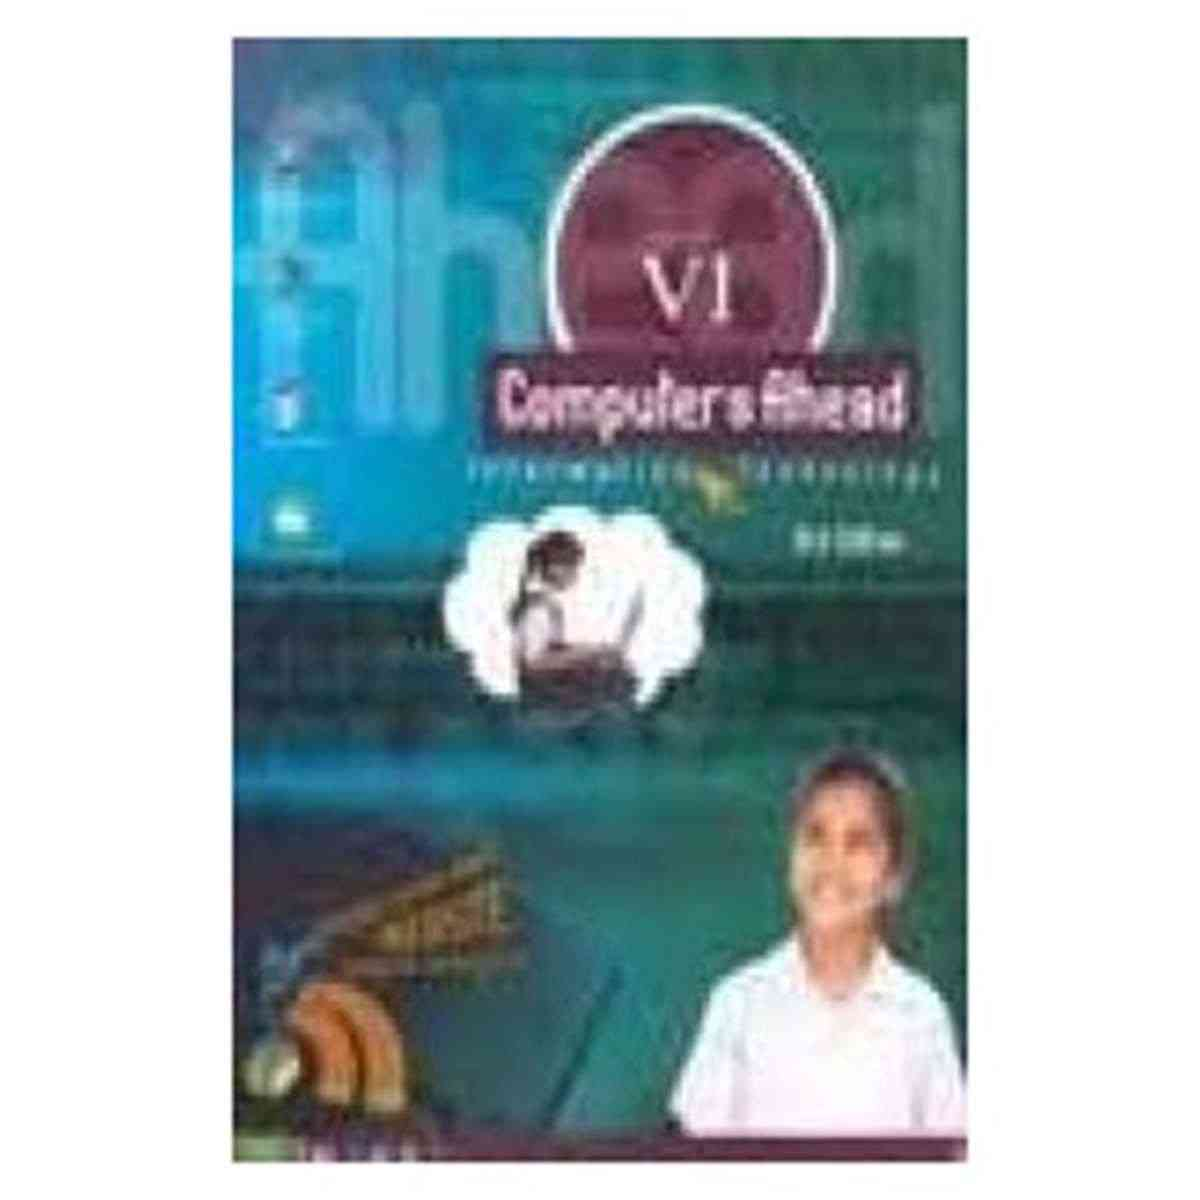 Paramount Class Vi: Computers Ahead Information Technology With Cd 3EPb